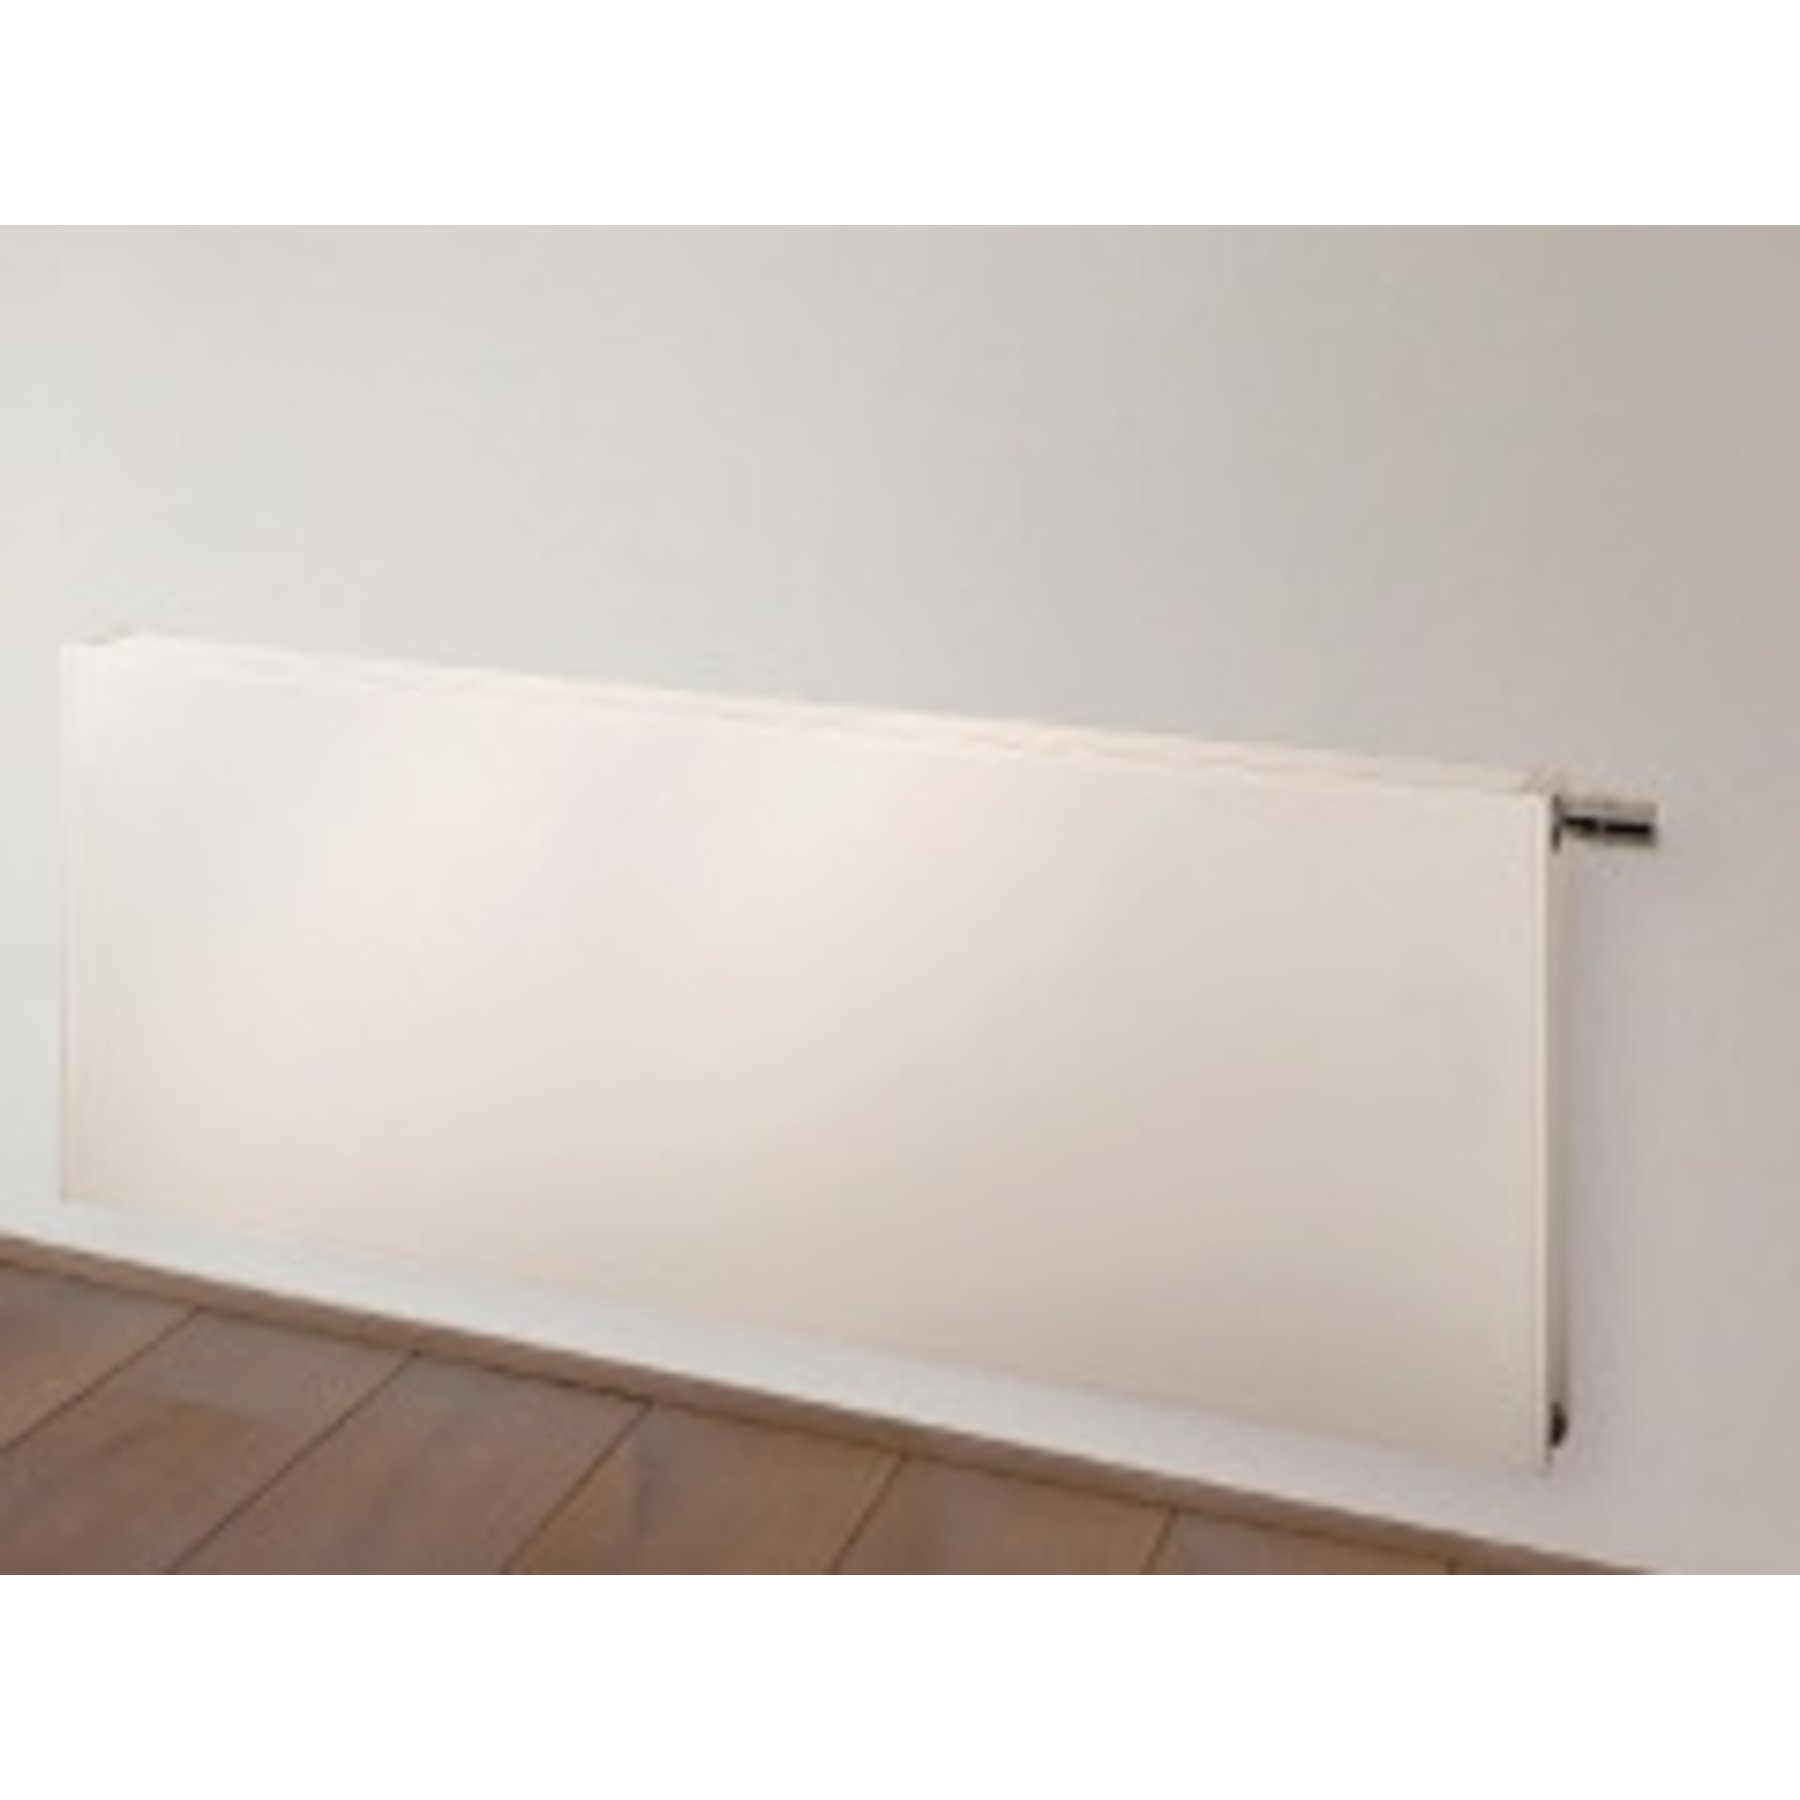 Vasco Flatline Paneelradiator type 22 400x3000mm 3471W vlak wit structuur (S600)